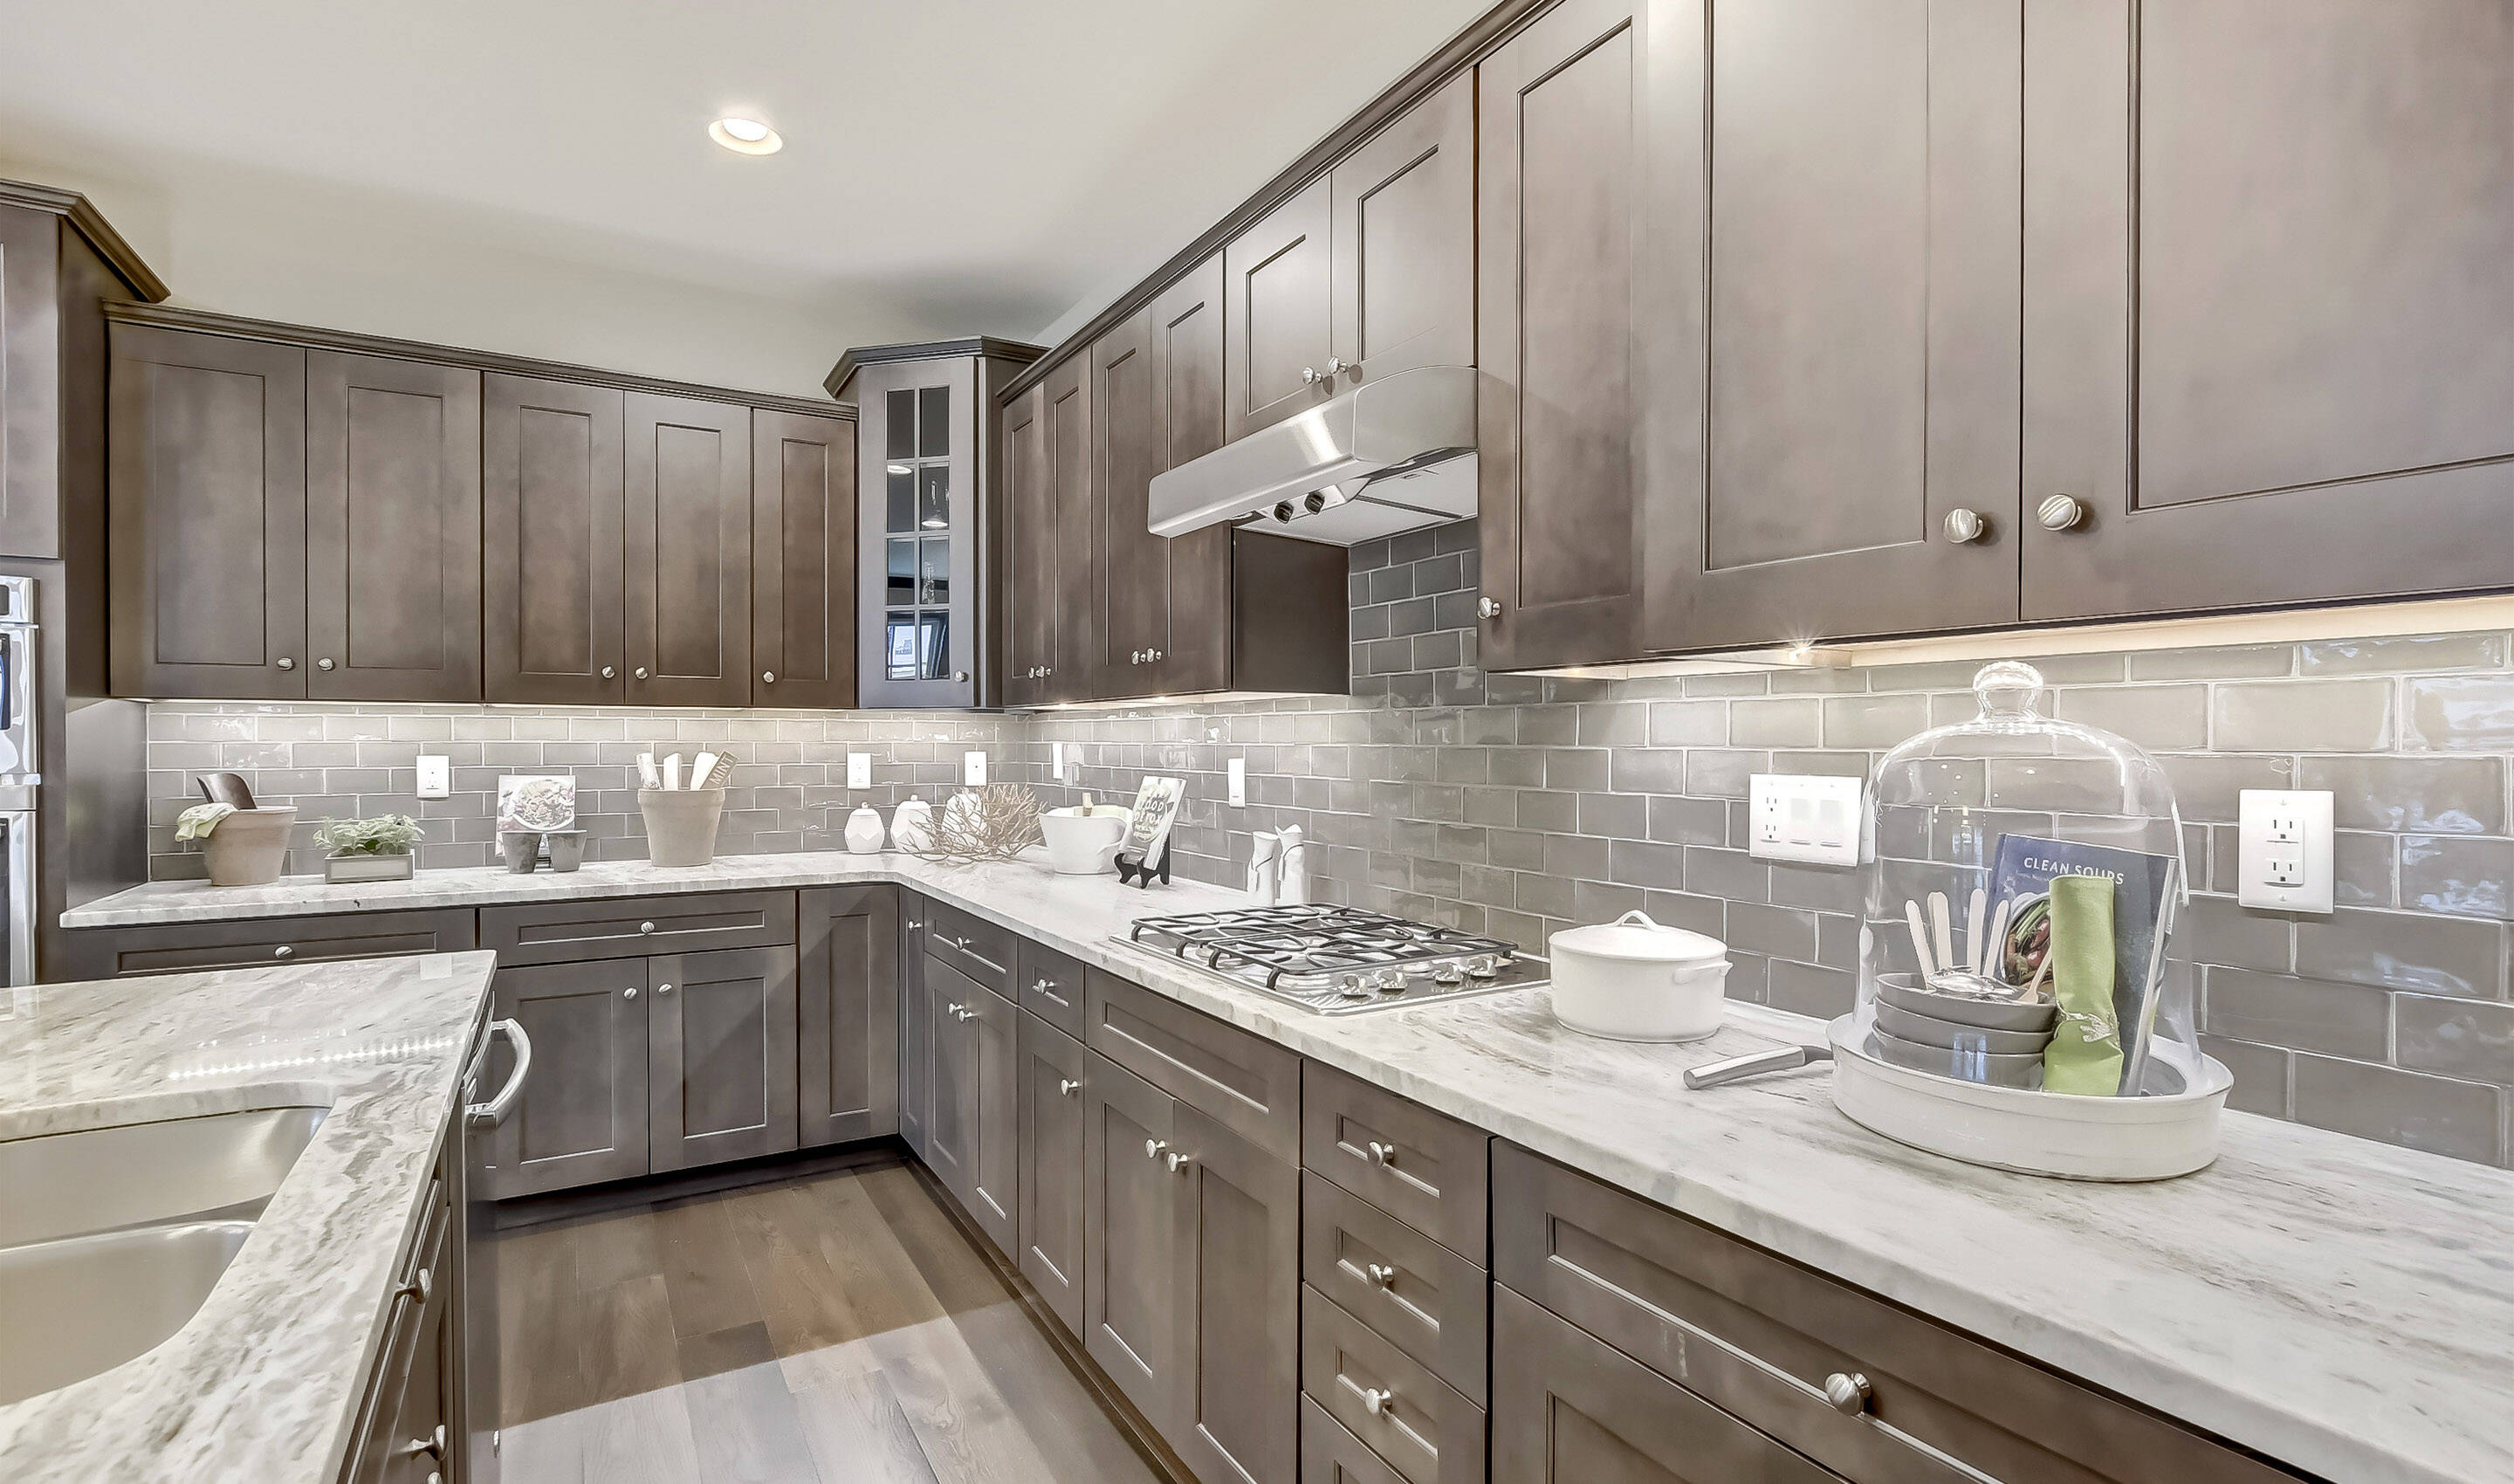 Ample Cabinet Space In Kitchen